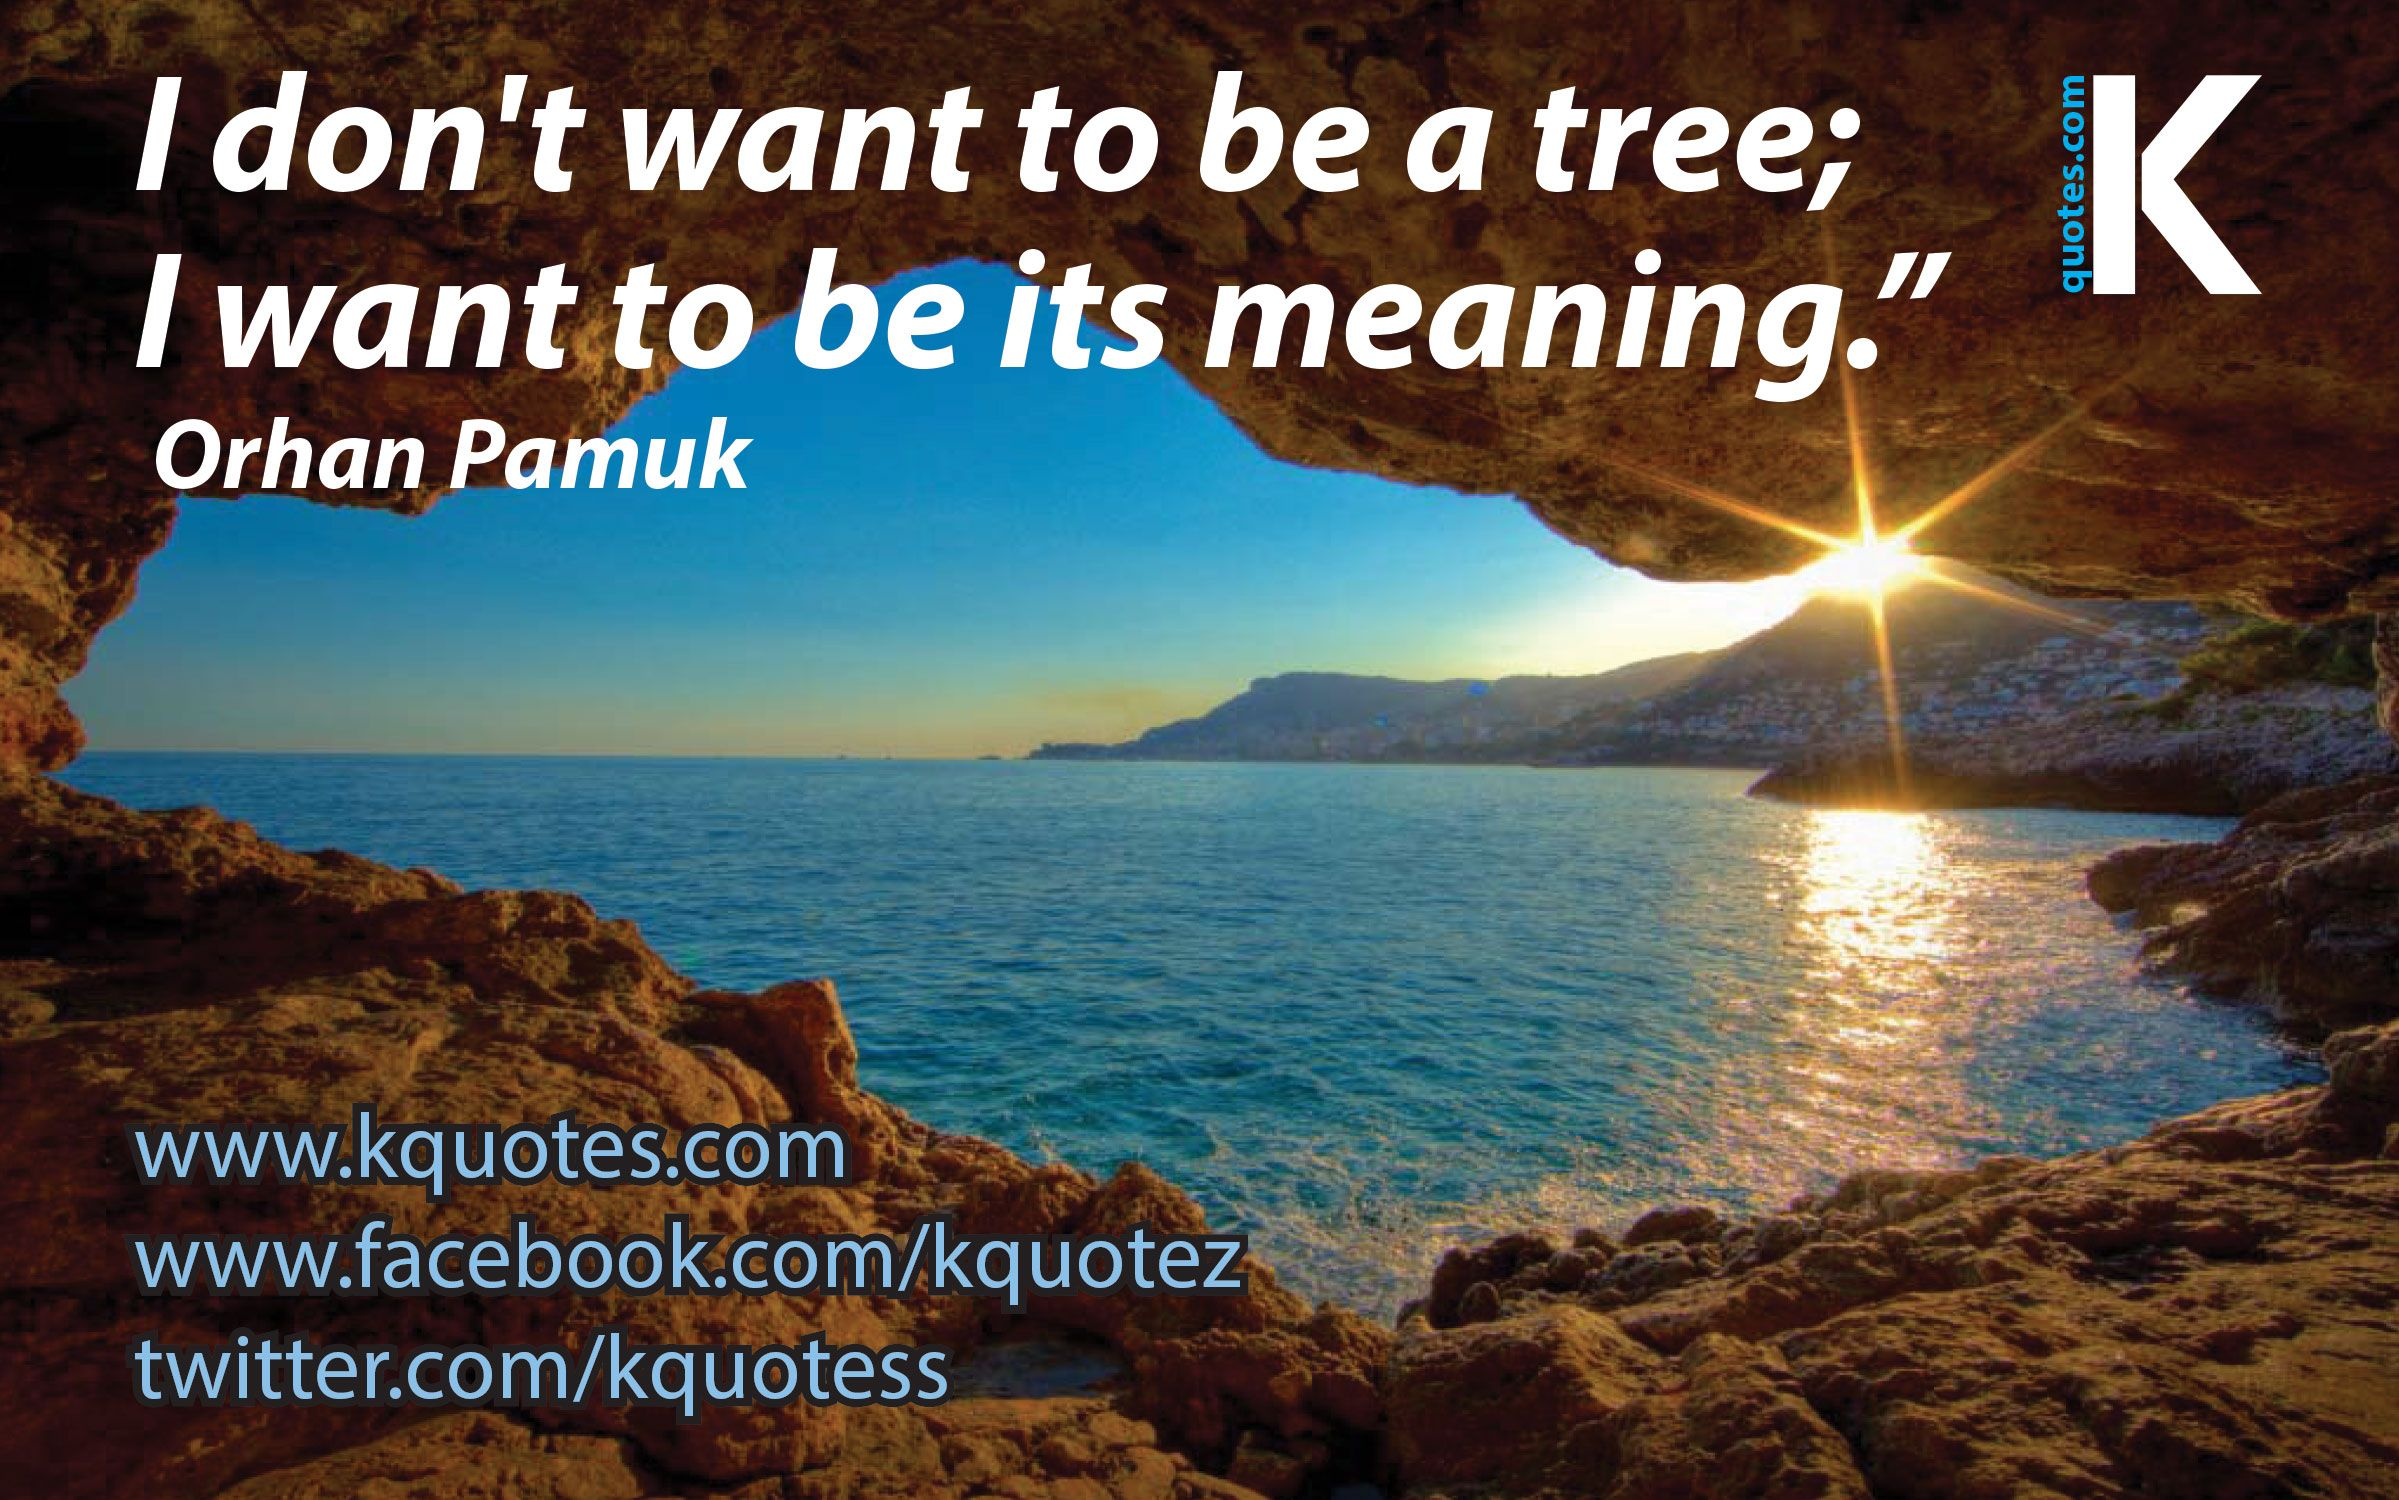 Right Place Where You Find Quotes For Different Moods And Situations  Http://kquotes